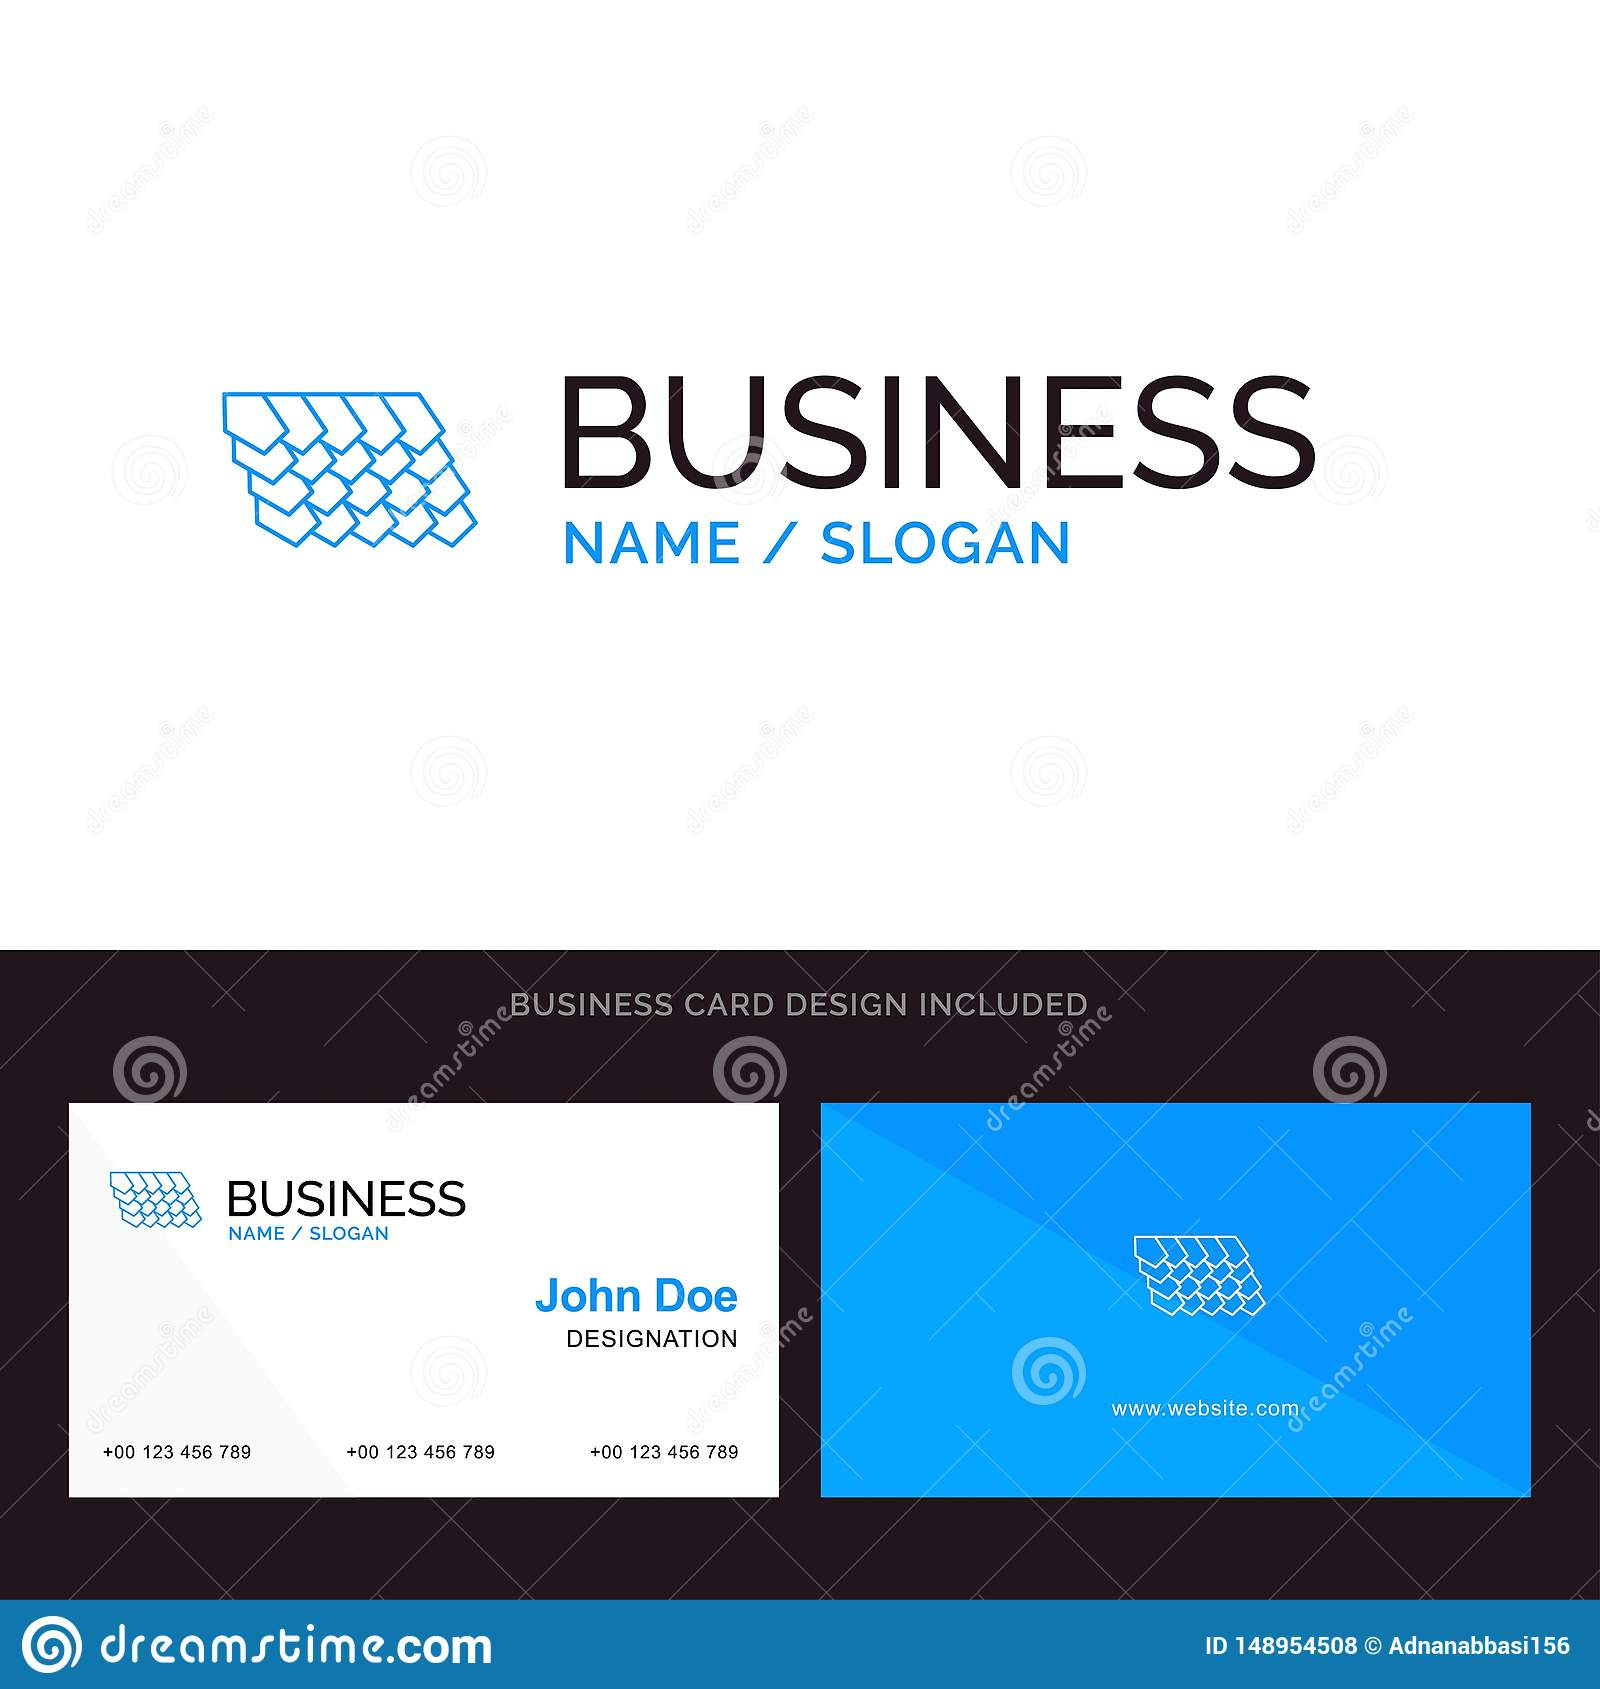 Roof Tile Top Construction Blue Business Logo And Business Card Template Front And Back Design Stock Vector Illustration Of Metal Element 148954508